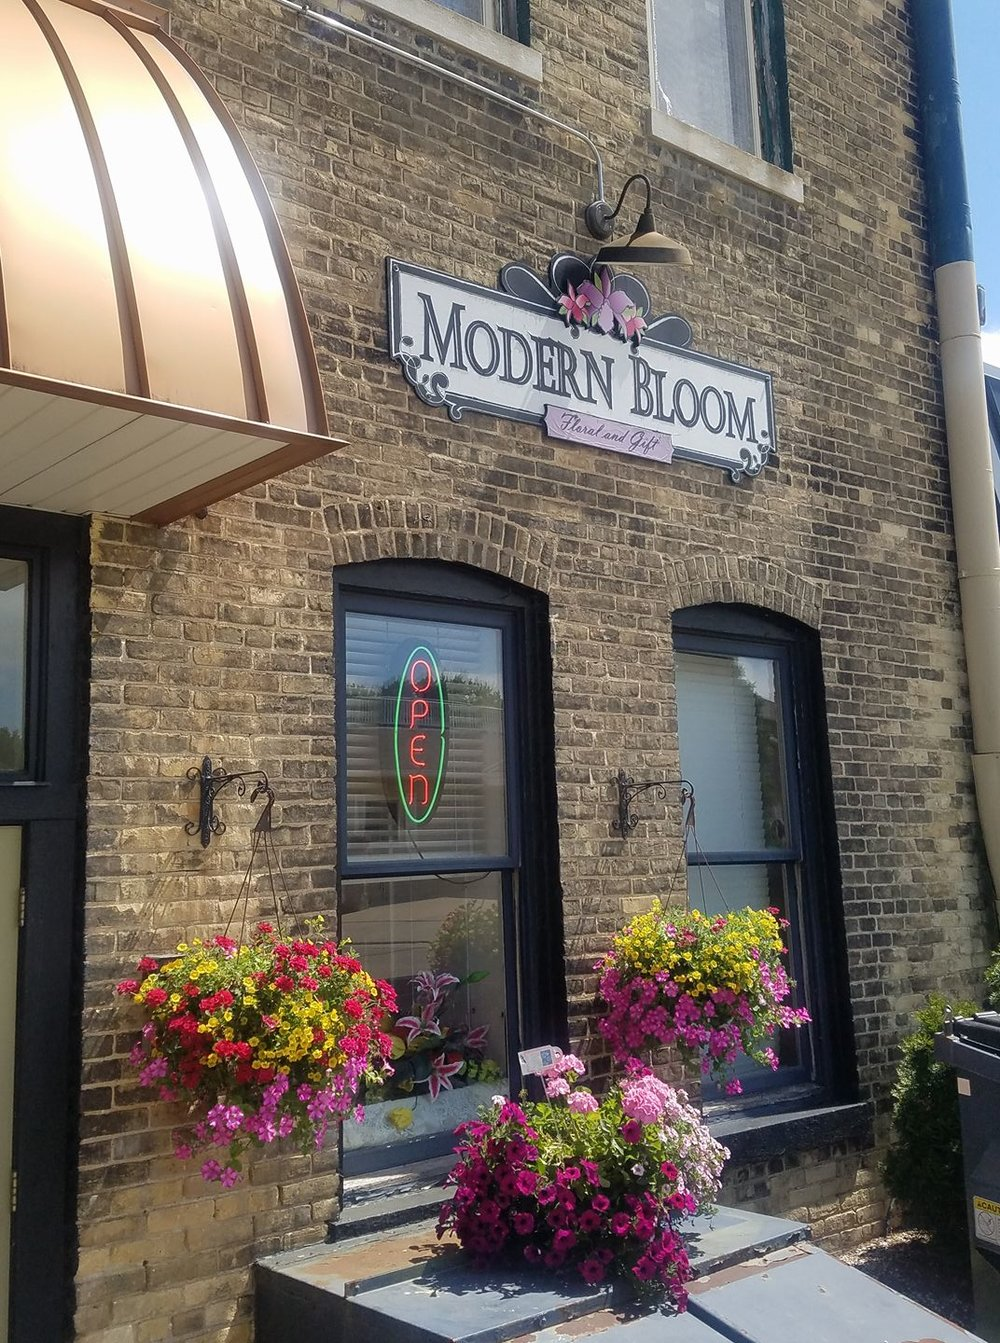 MODERN BLOOM - 203 East Wisconsin Avenue, Oconomowoc